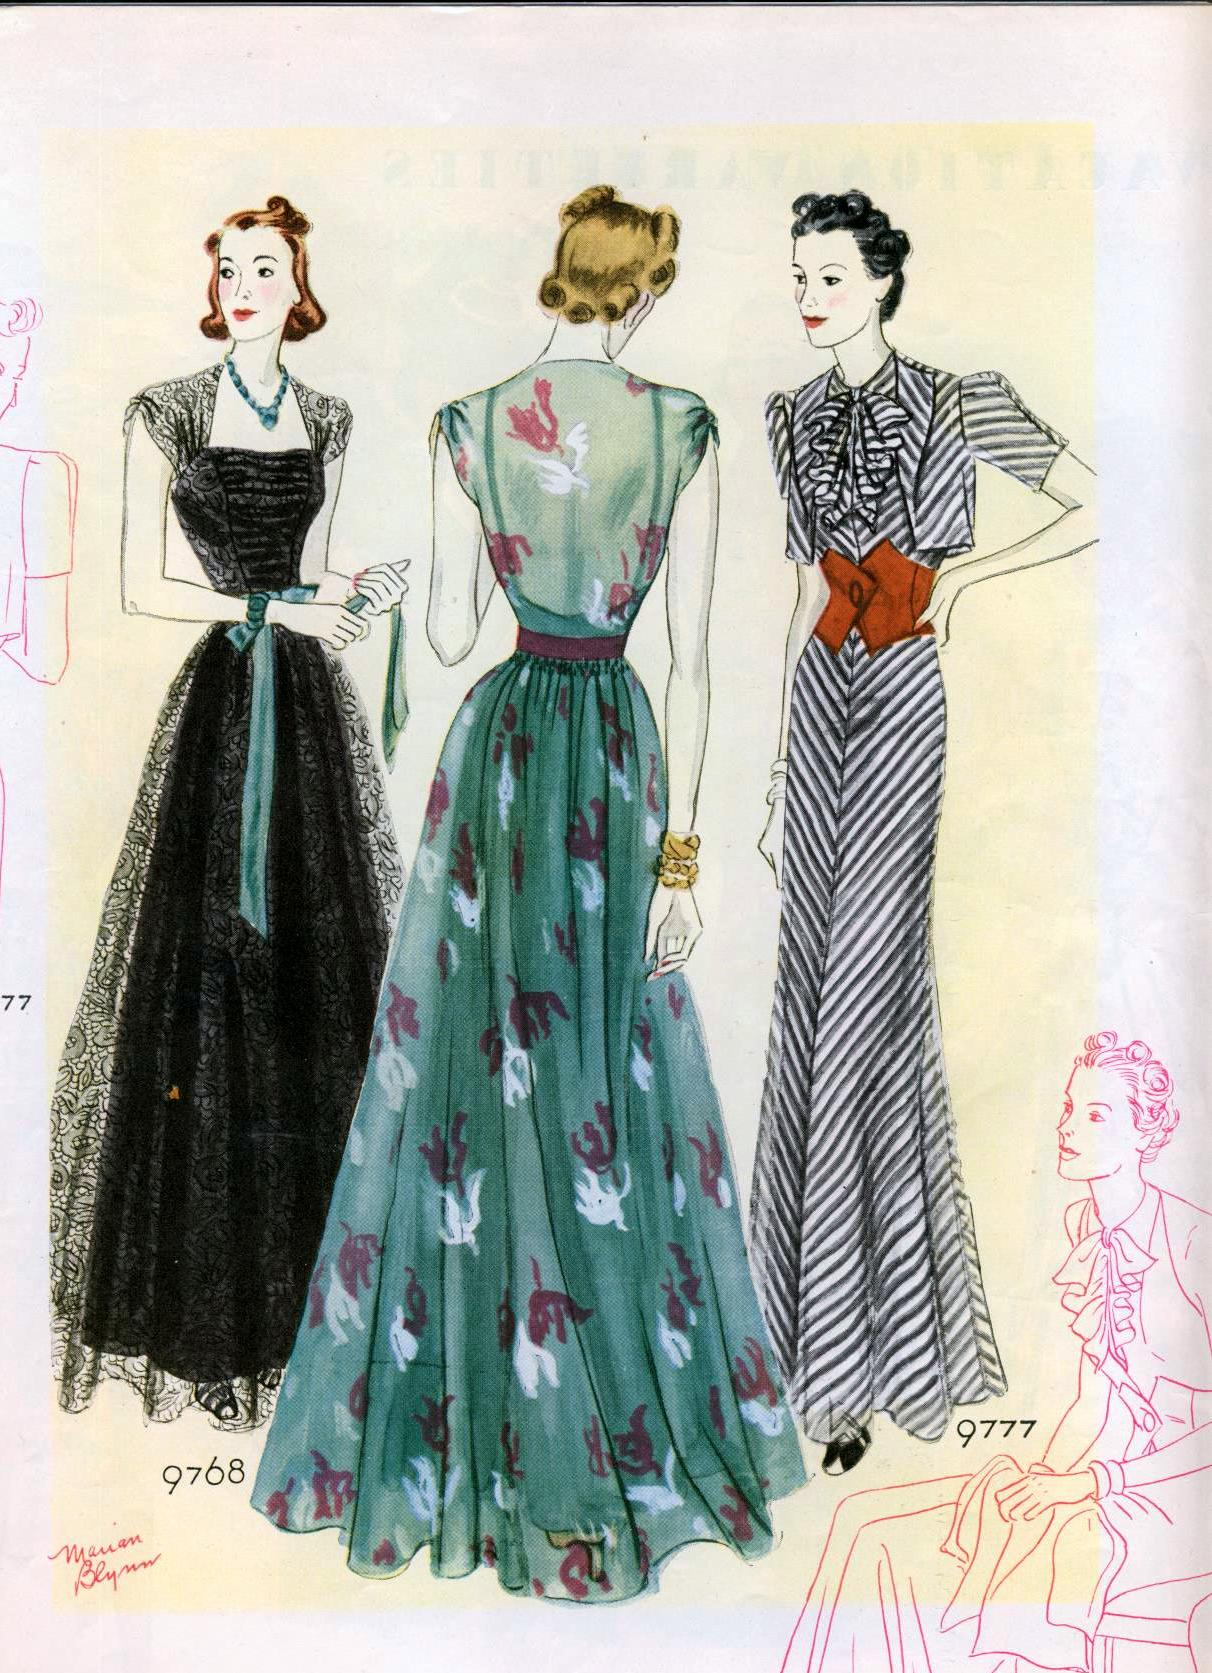 Fashion illustrations from 1938